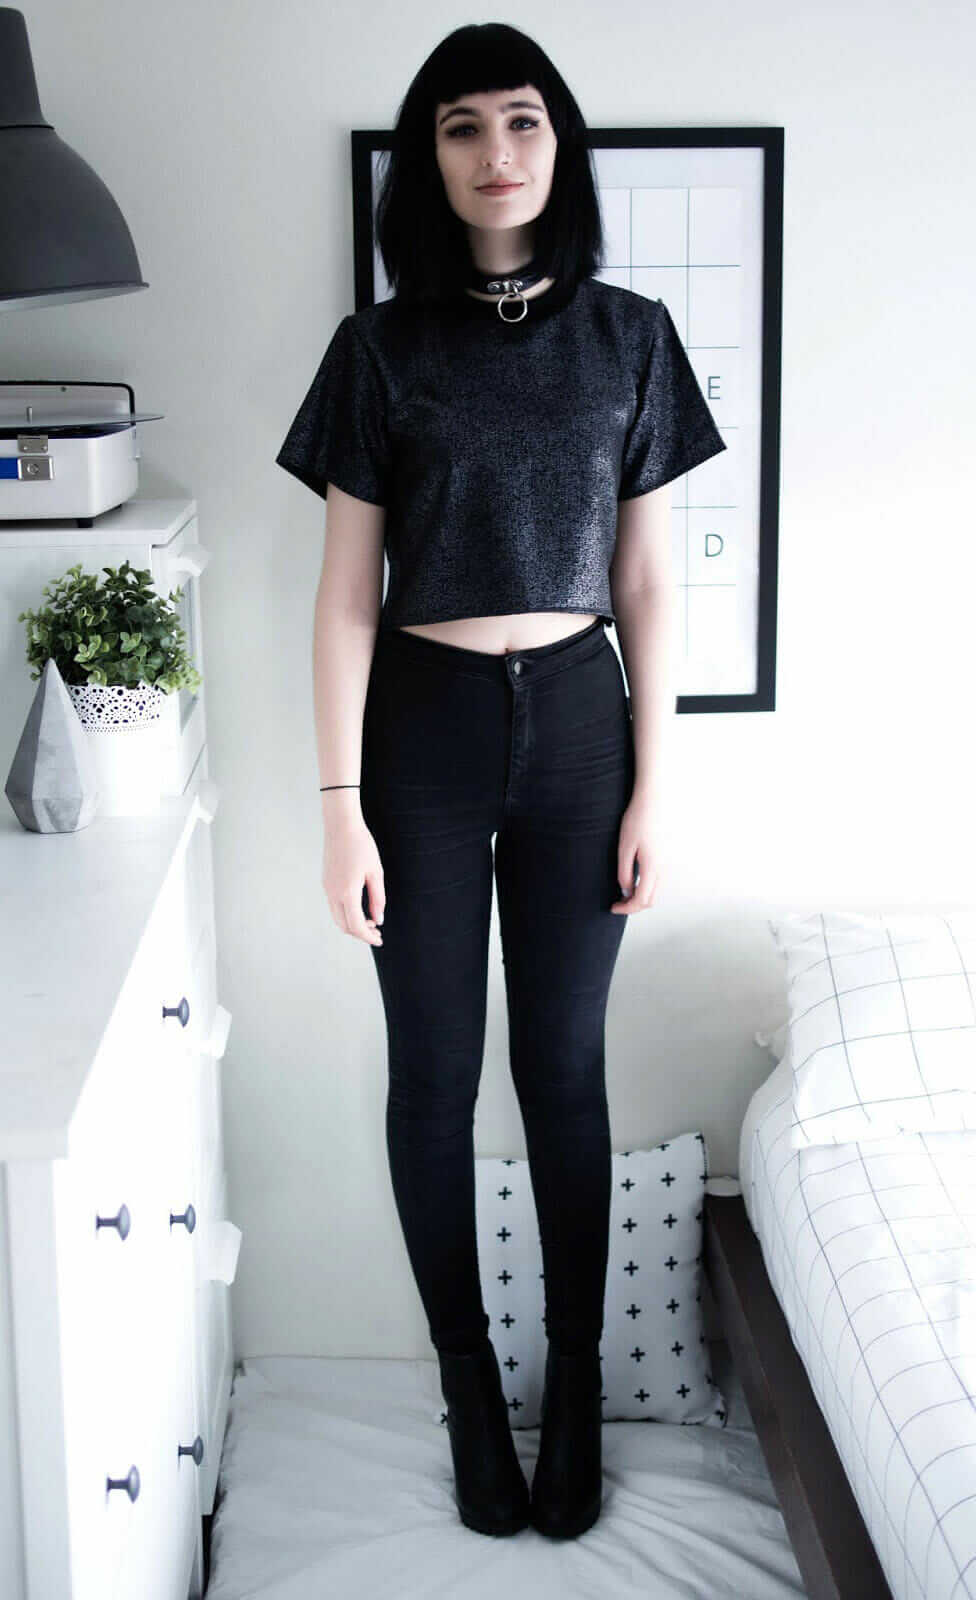 Speckled Crop Top, High Waisted Tight Skinny Black Joni Jeans & Black Platform Boots